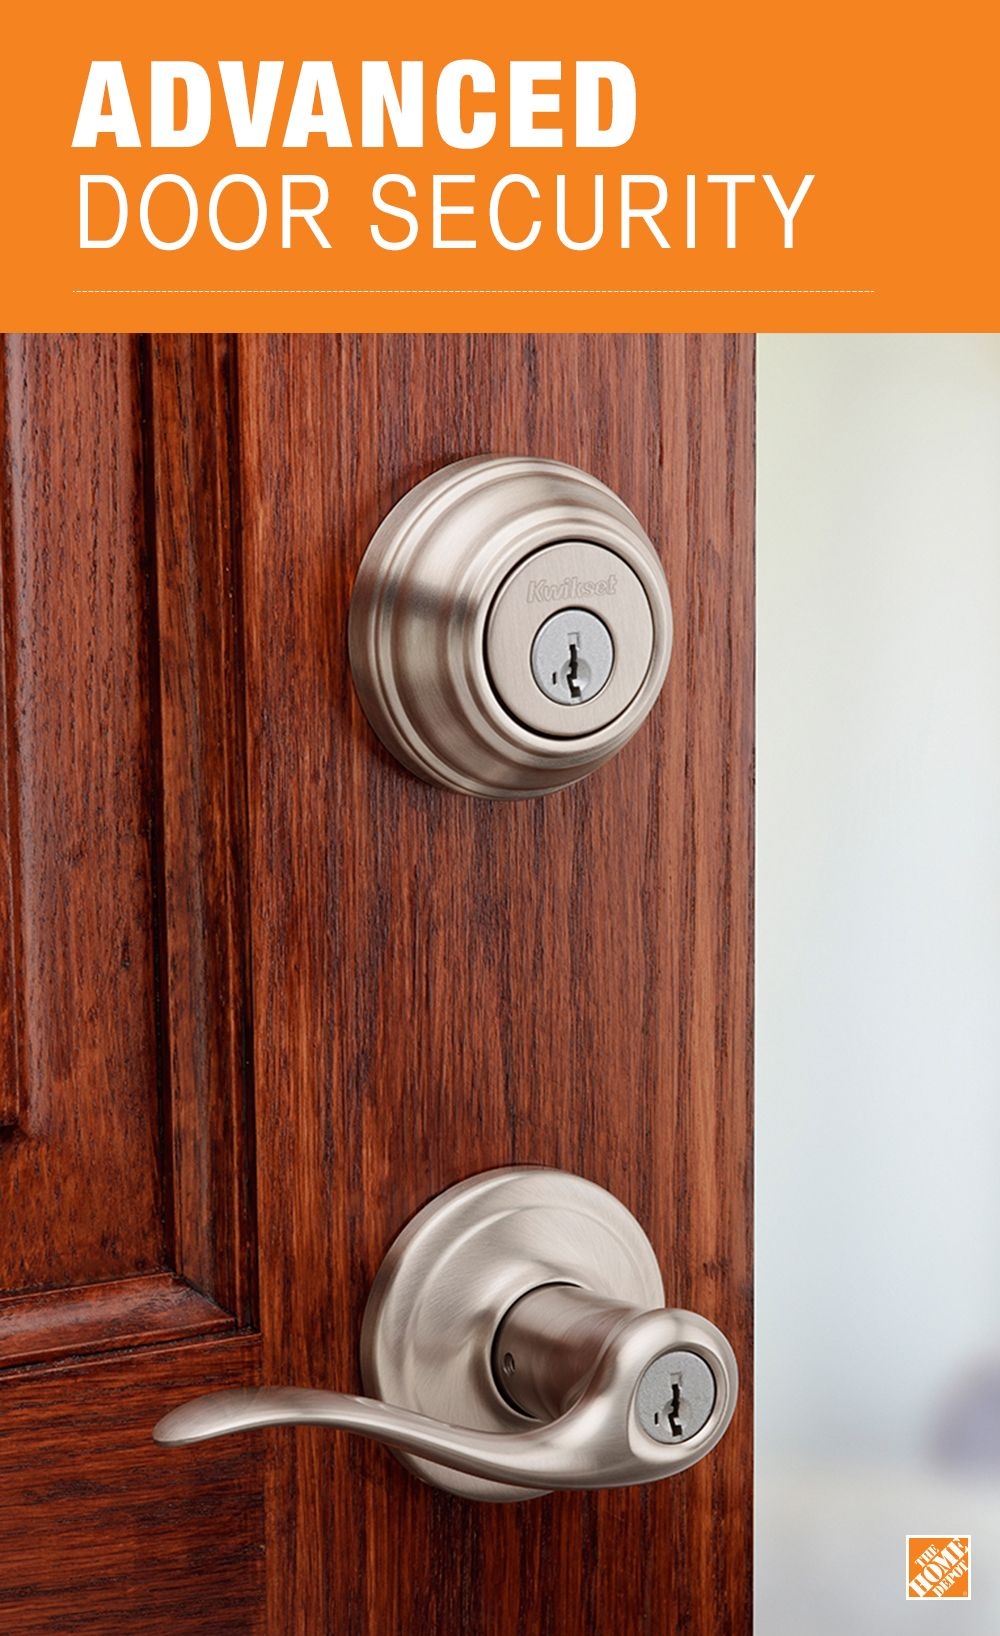 37+ Door knobs home depot front door ideas in 2021